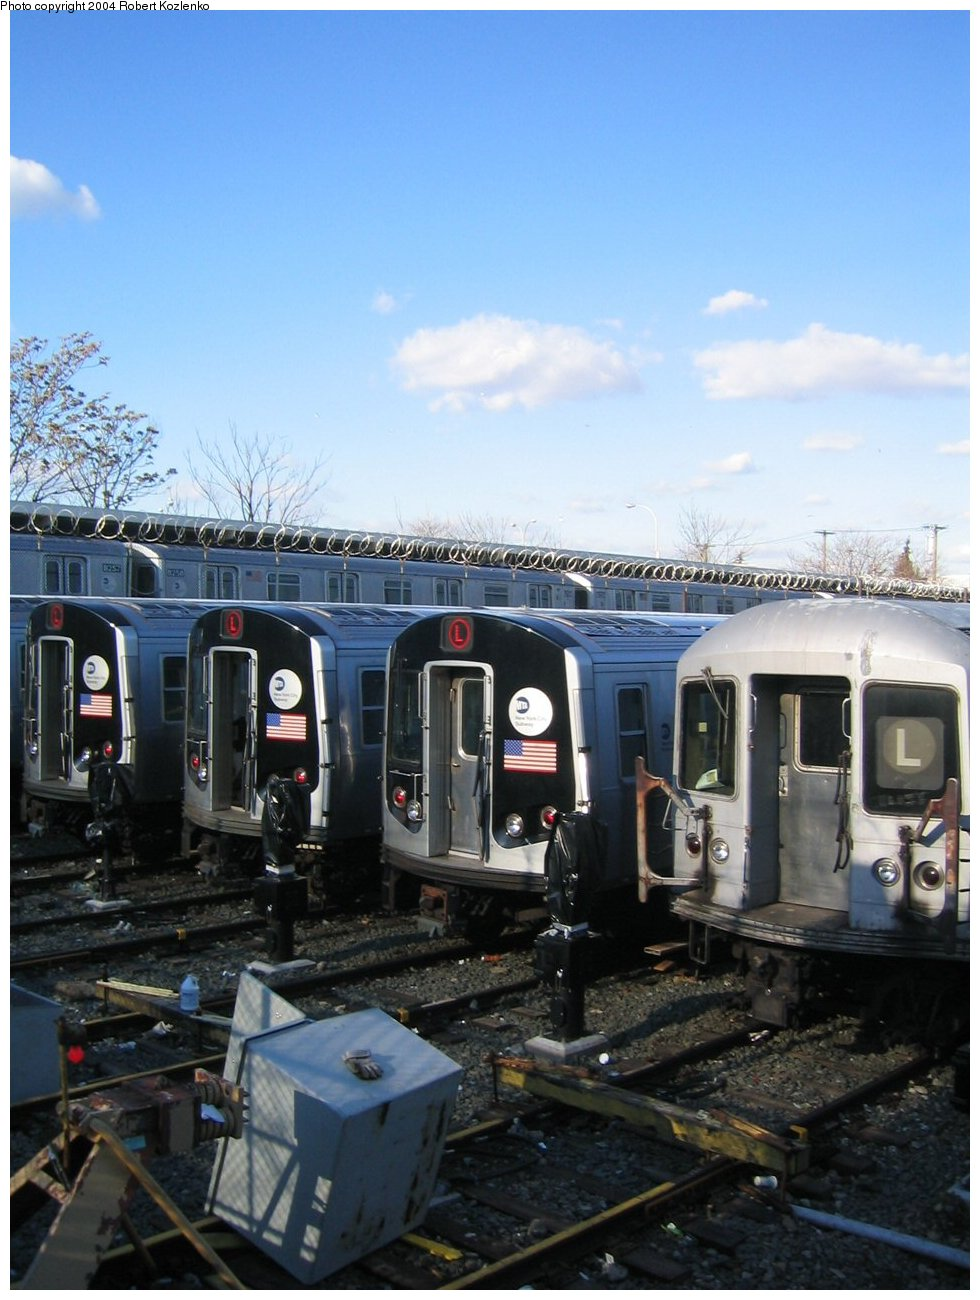 (215k, 980x1300)<br><b>Country:</b> United States<br><b>City:</b> New York<br><b>System:</b> New York City Transit<br><b>Location:</b> Rockaway Parkway (Canarsie) Yard<br><b>Car:</b> R-143 (Kawasaki, 2001-2002)  <br><b>Photo by:</b> Robert Kozlenko<br><b>Date:</b> 11/26/2004<br><b>Viewed (this week/total):</b> 4 / 4258